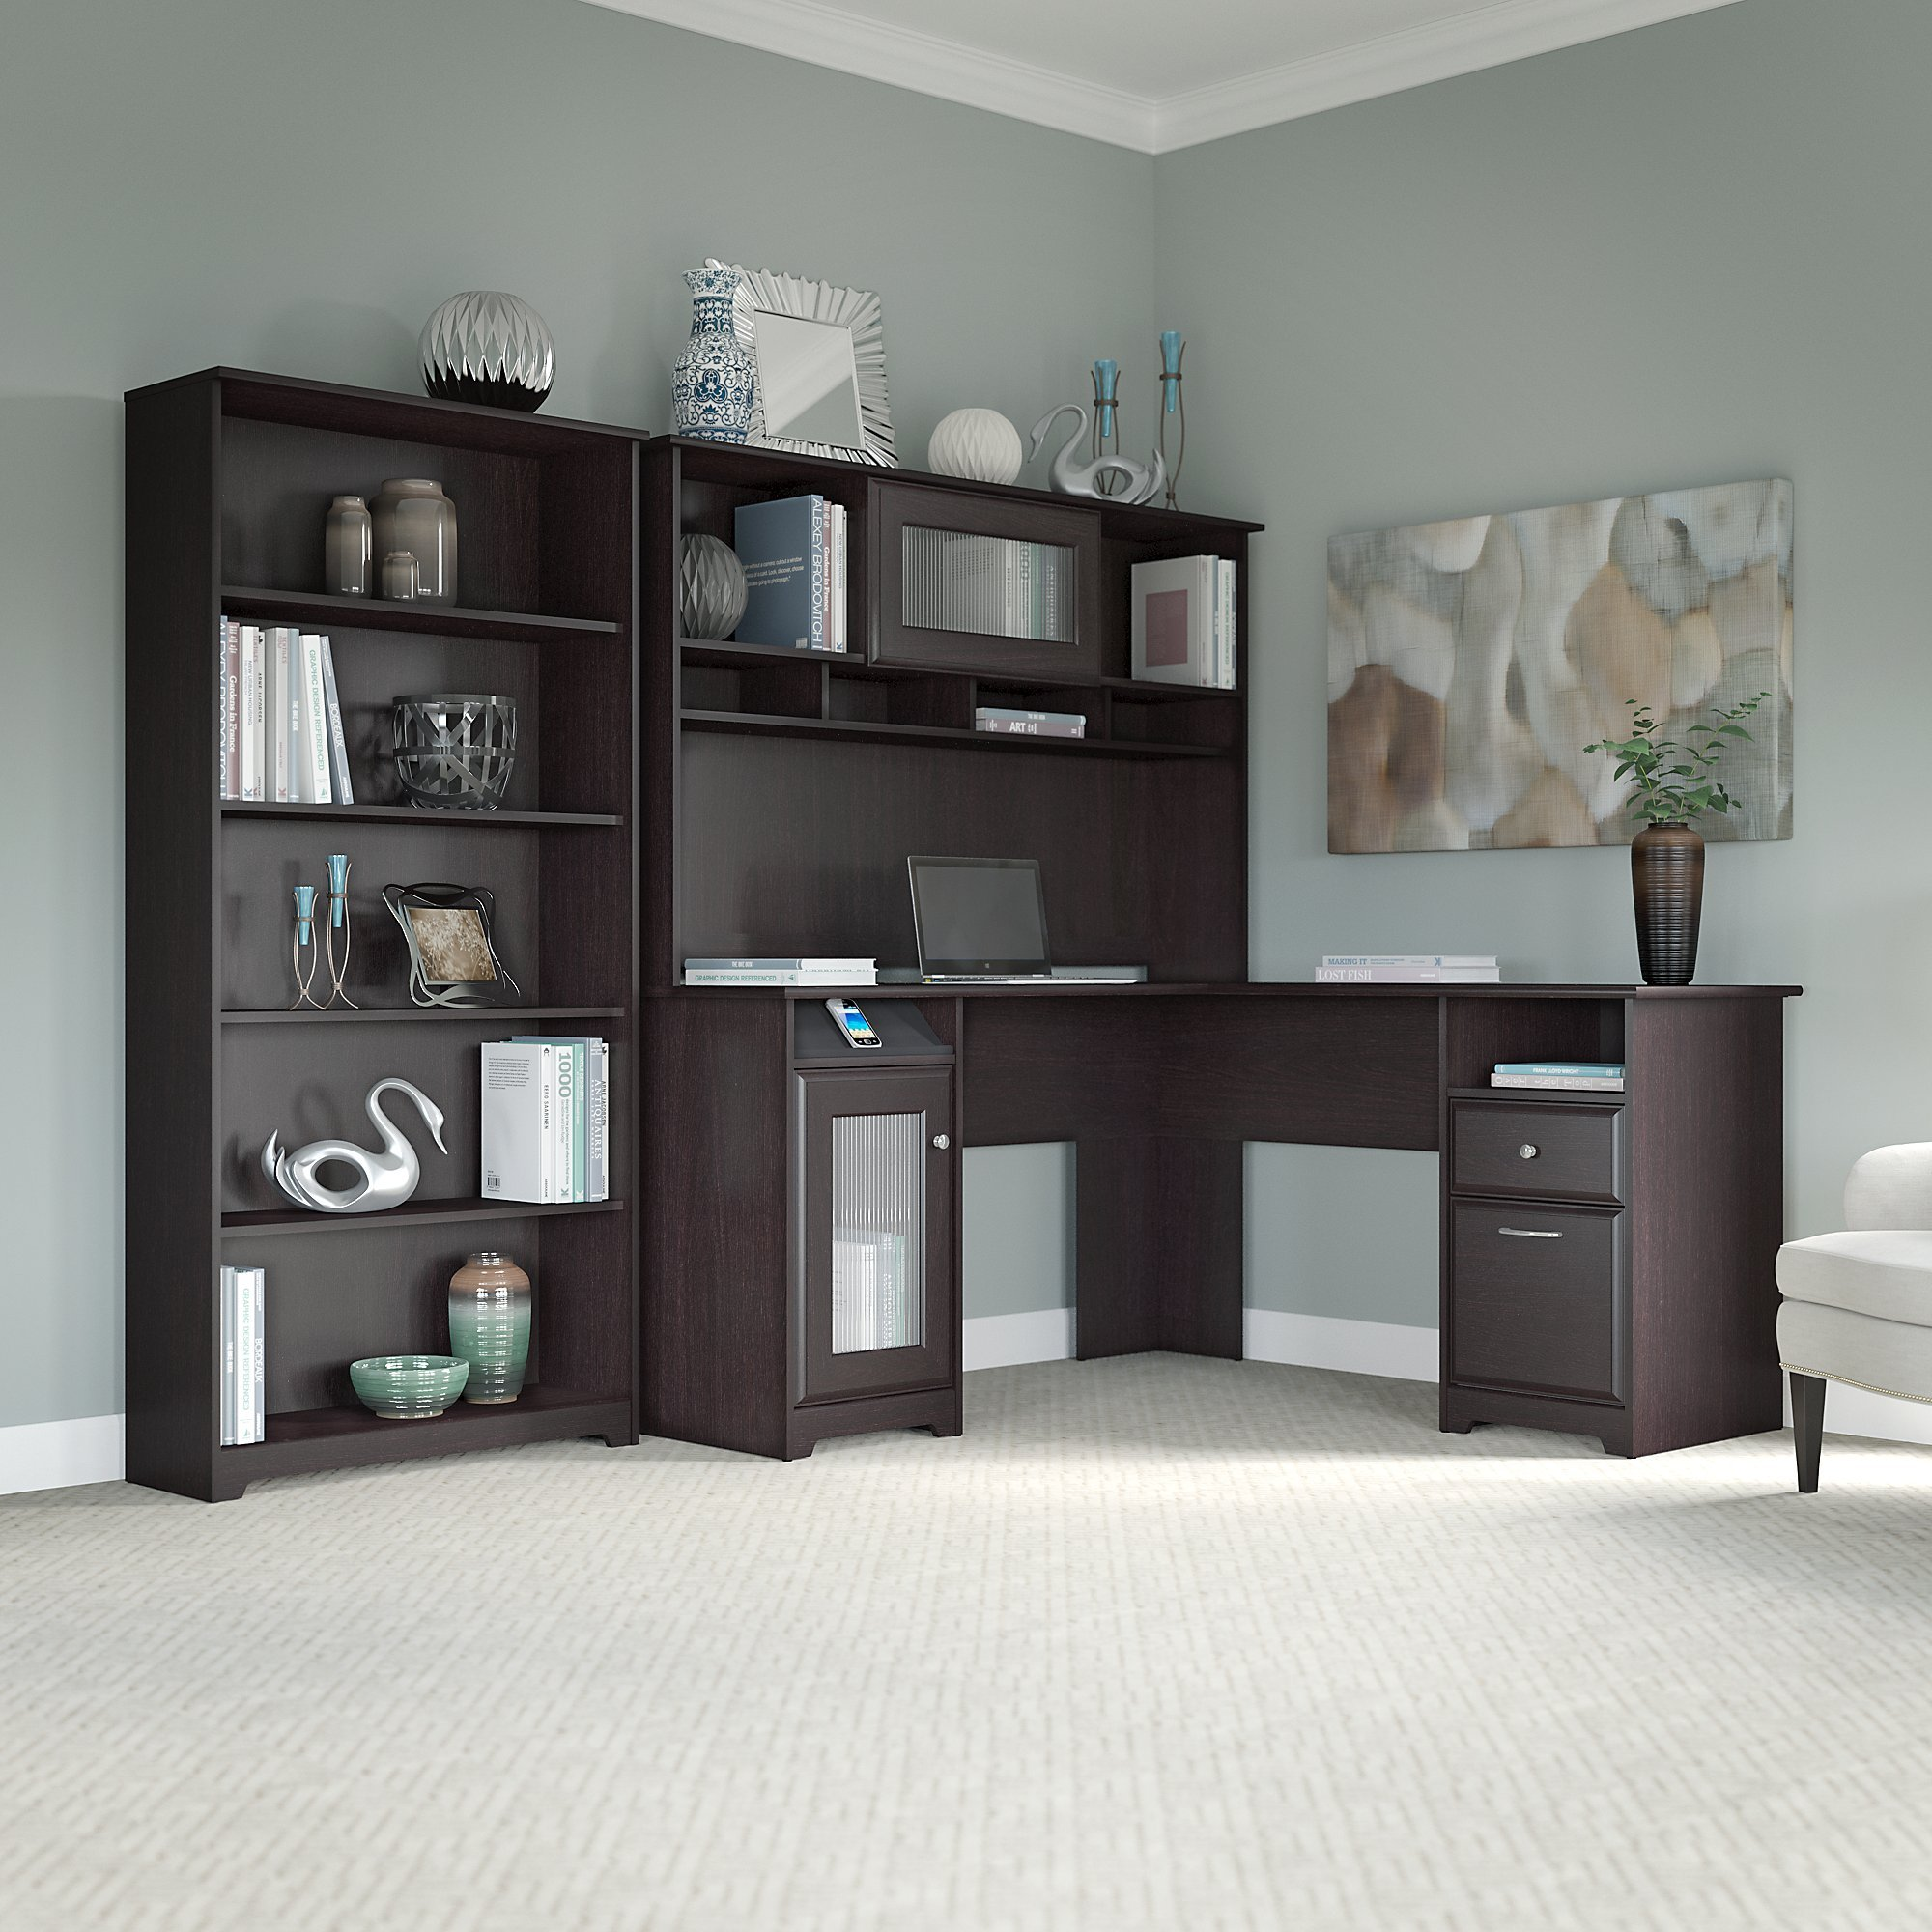 Cabot L Shaped Desk with Hutch and 5 Shelf Bookcase in Espresso Oak